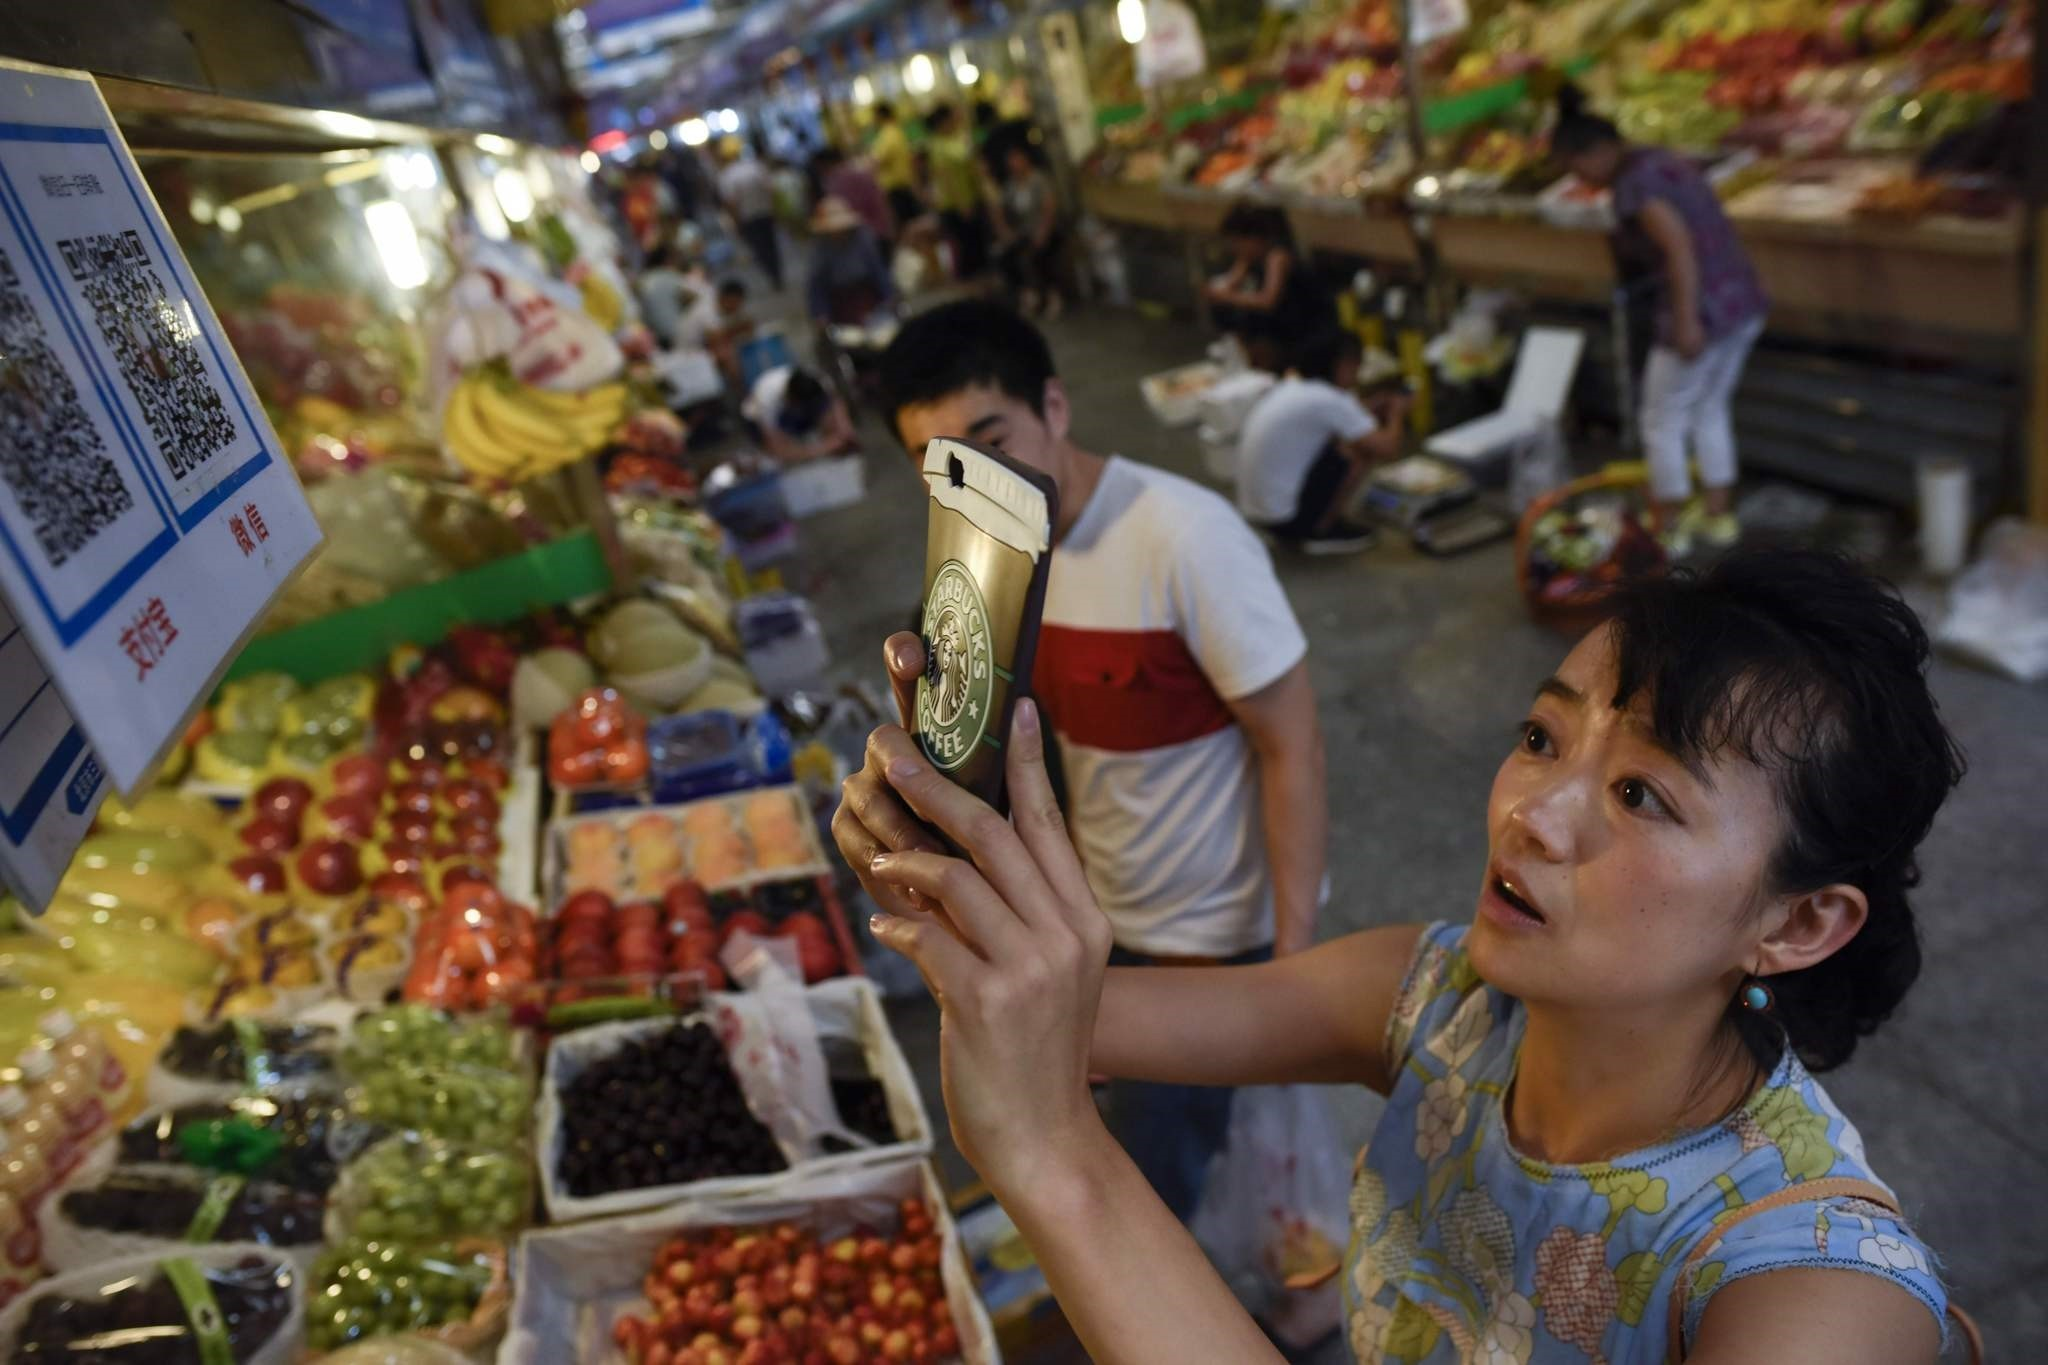 A woman makes purchases by scanning QR codes using her smartphone at a fruit stall in a market in Beijing.